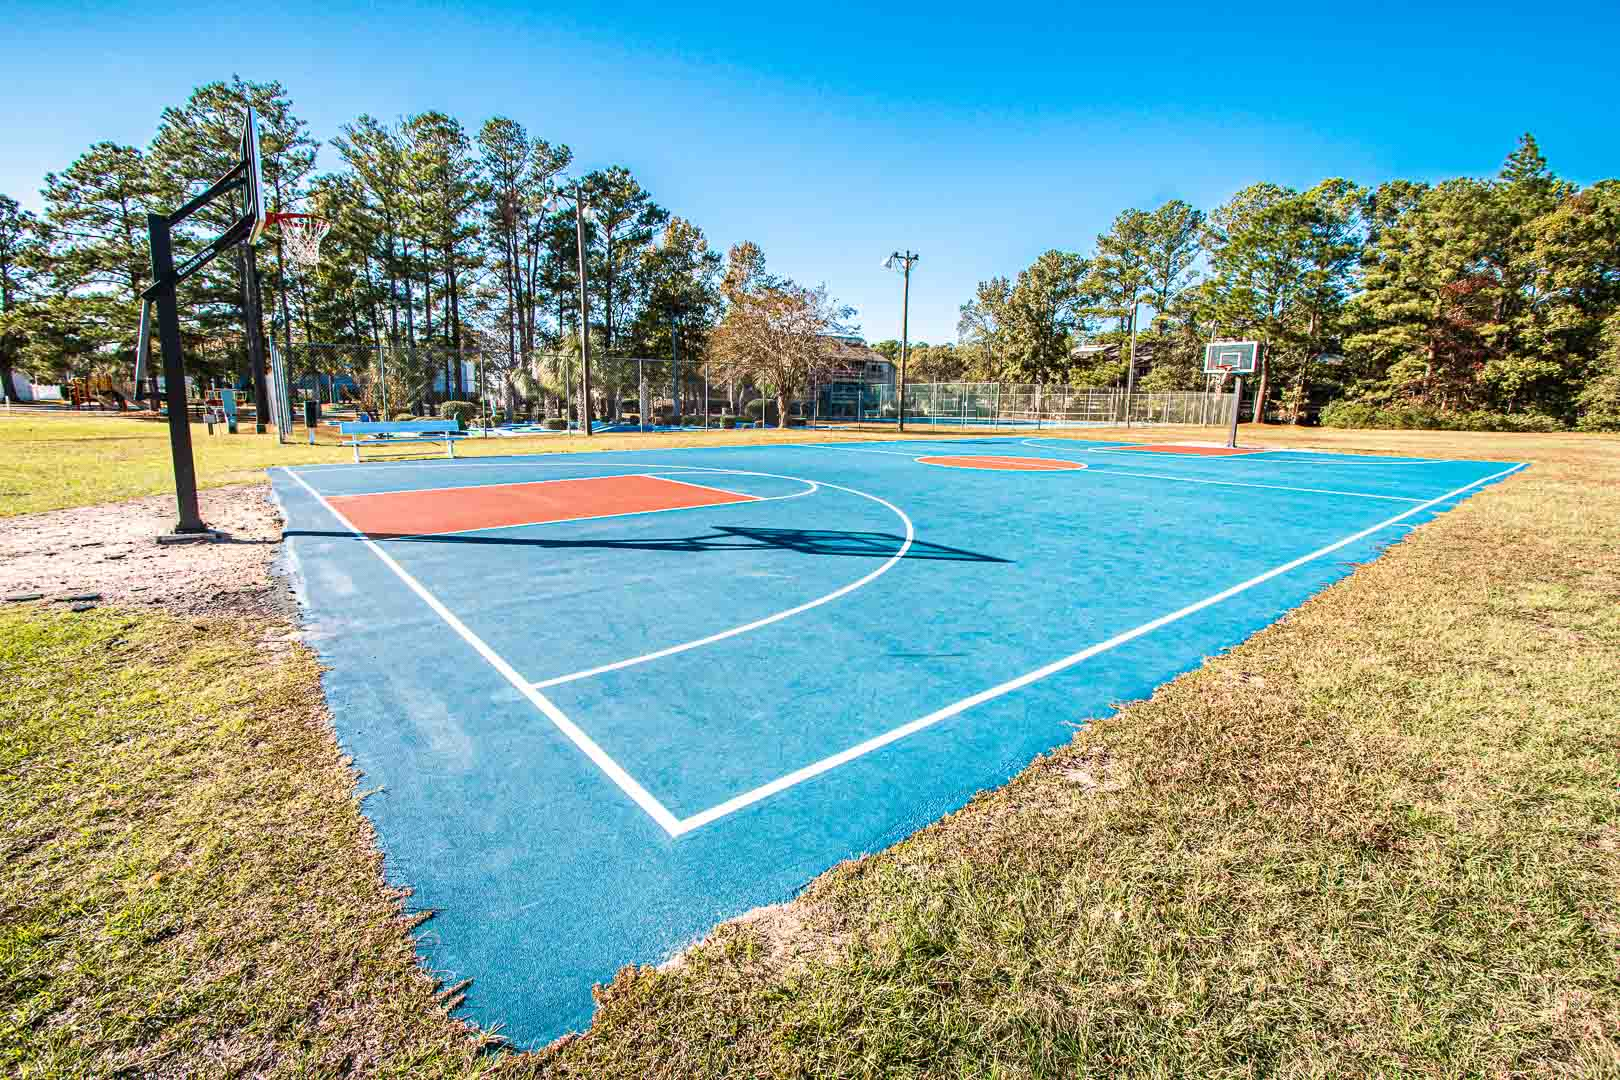 A spacious outdoor basketball court at VRI's Waterwood Townhomes in New Bern, North Carolina.